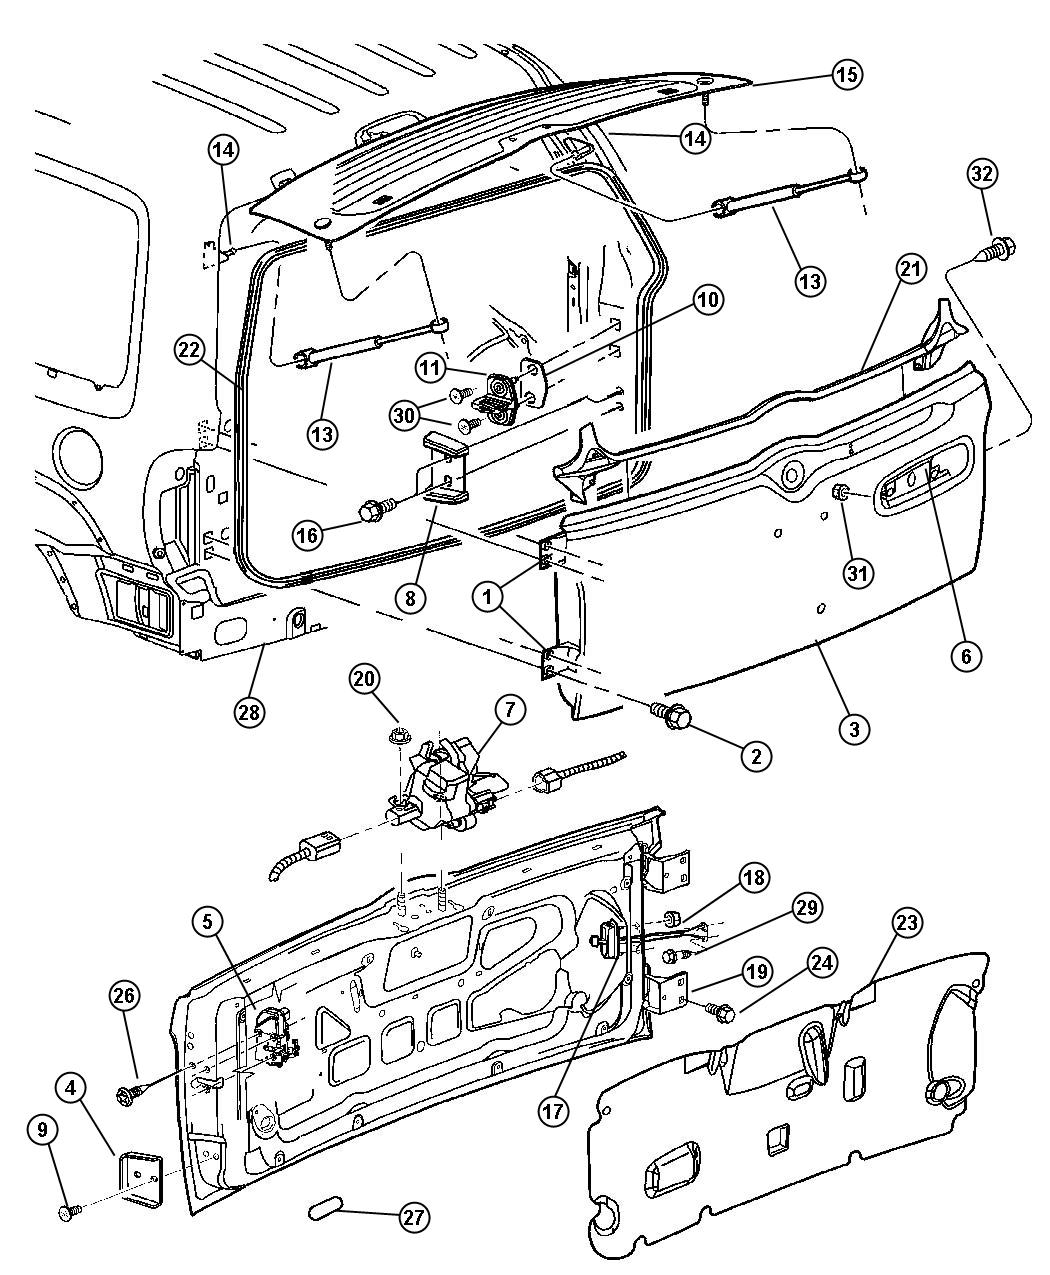 jeep liberty parts diagram door swing